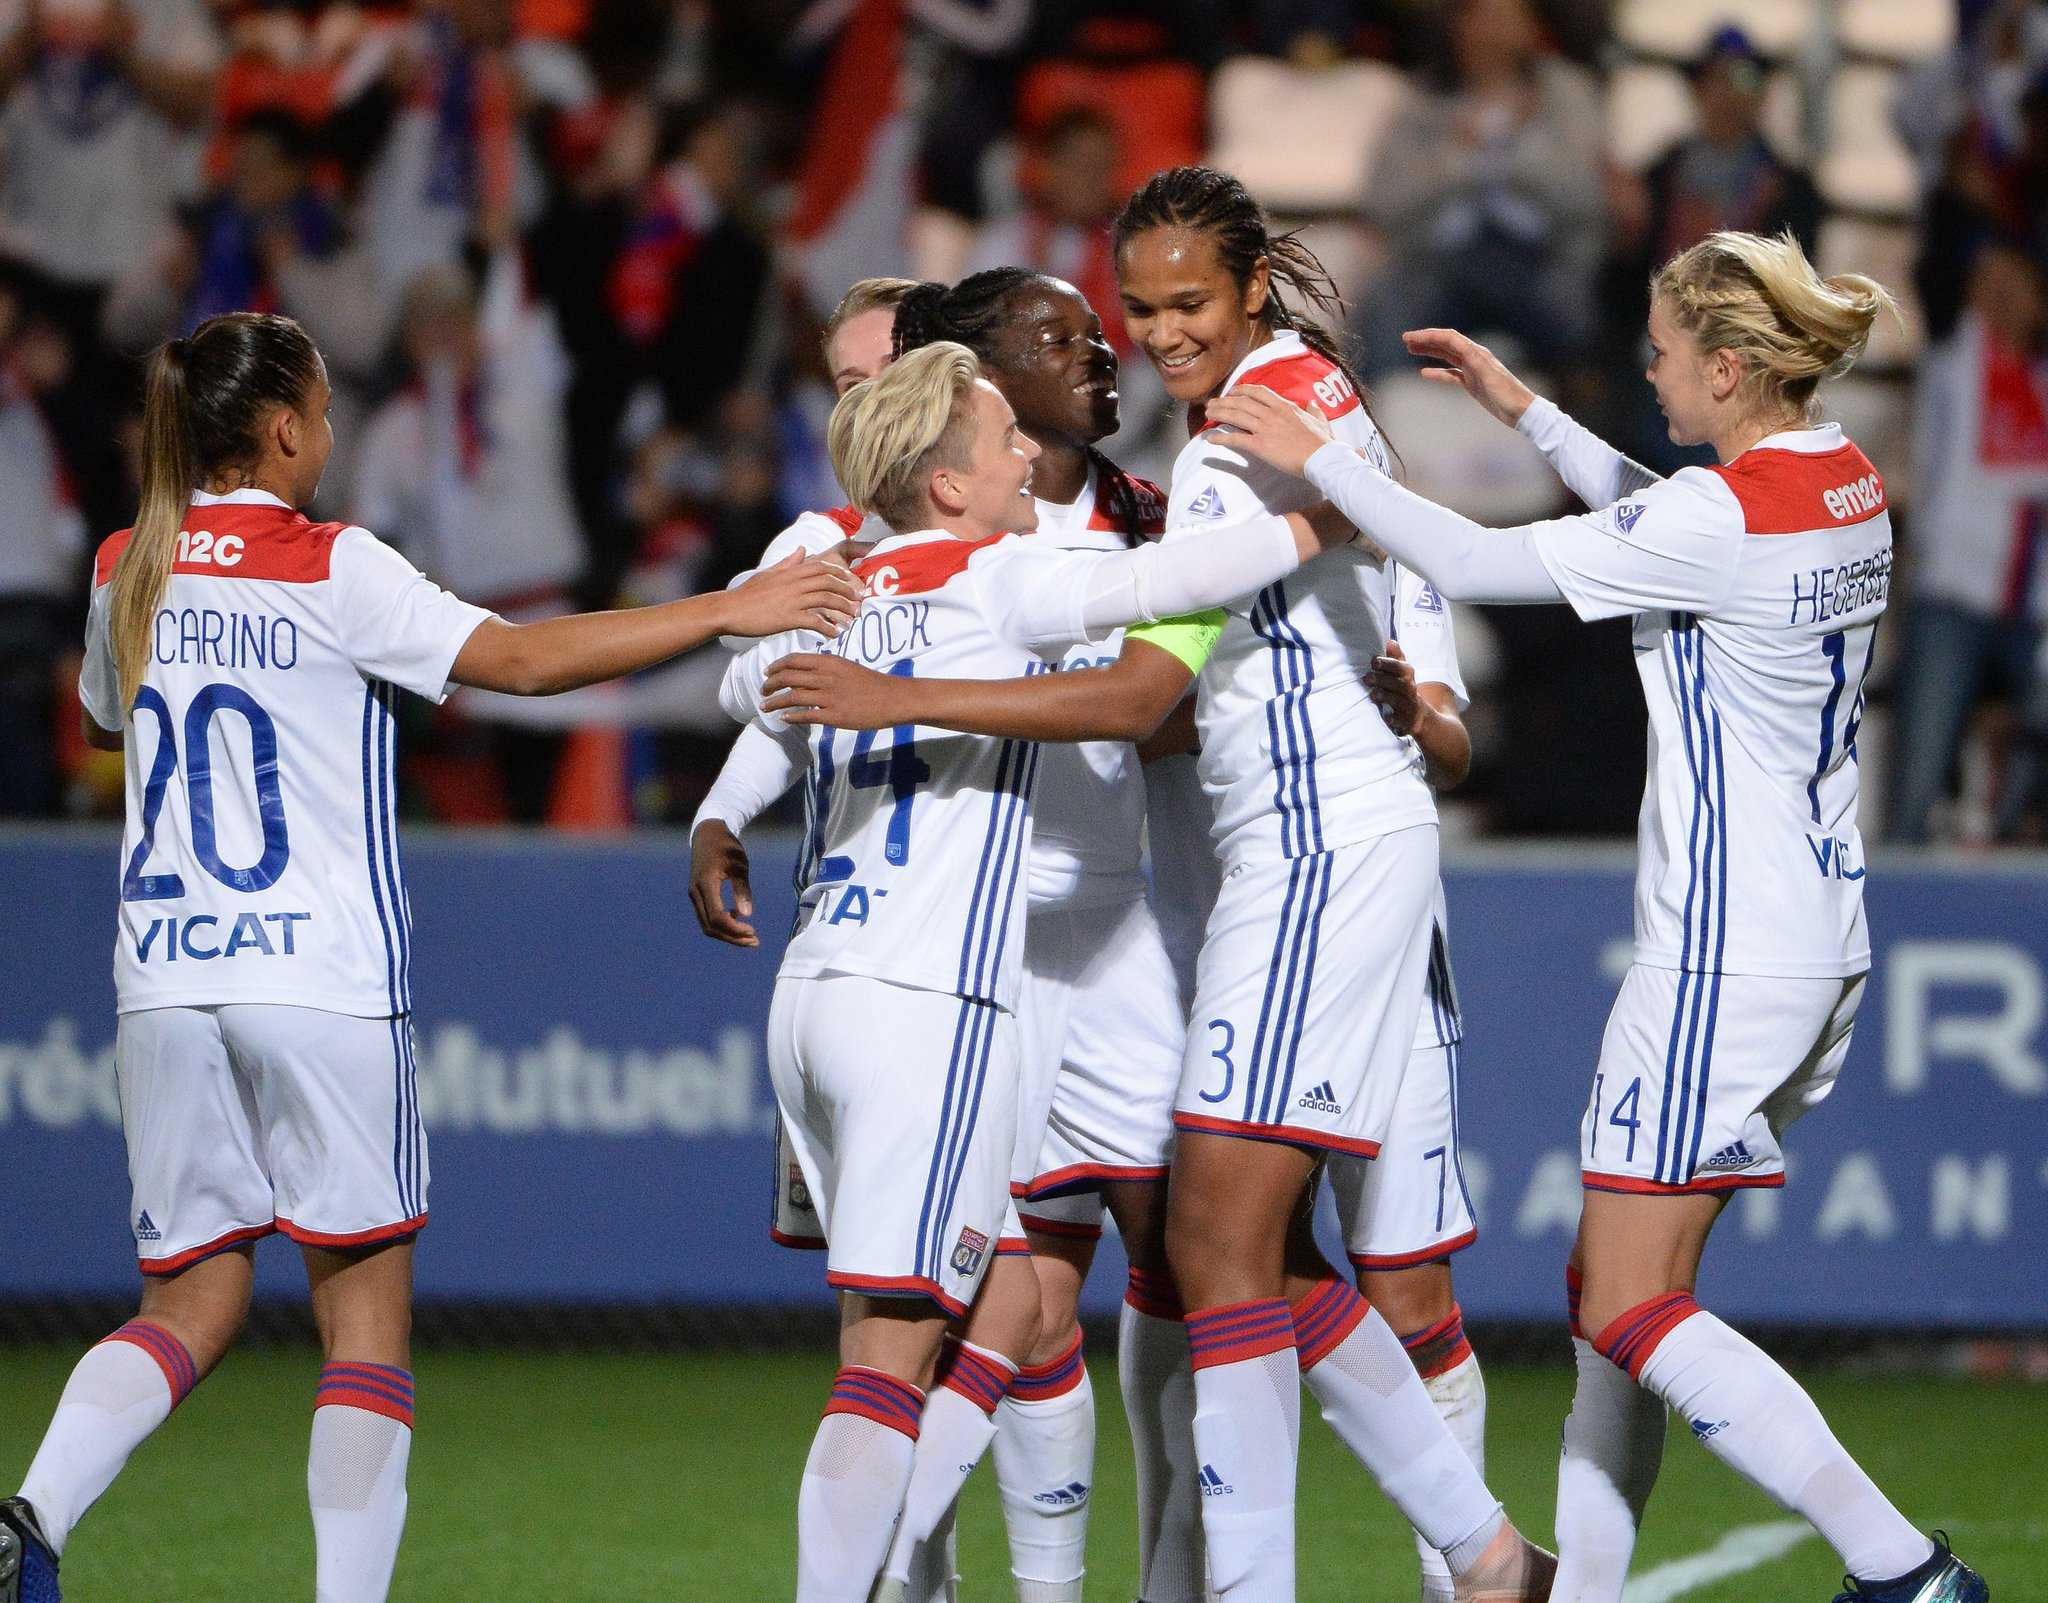 [UWCL, 1 / 8e back] OL - Ajax (9-0): Lyon qualify for 1/4 after outclassing Ajax